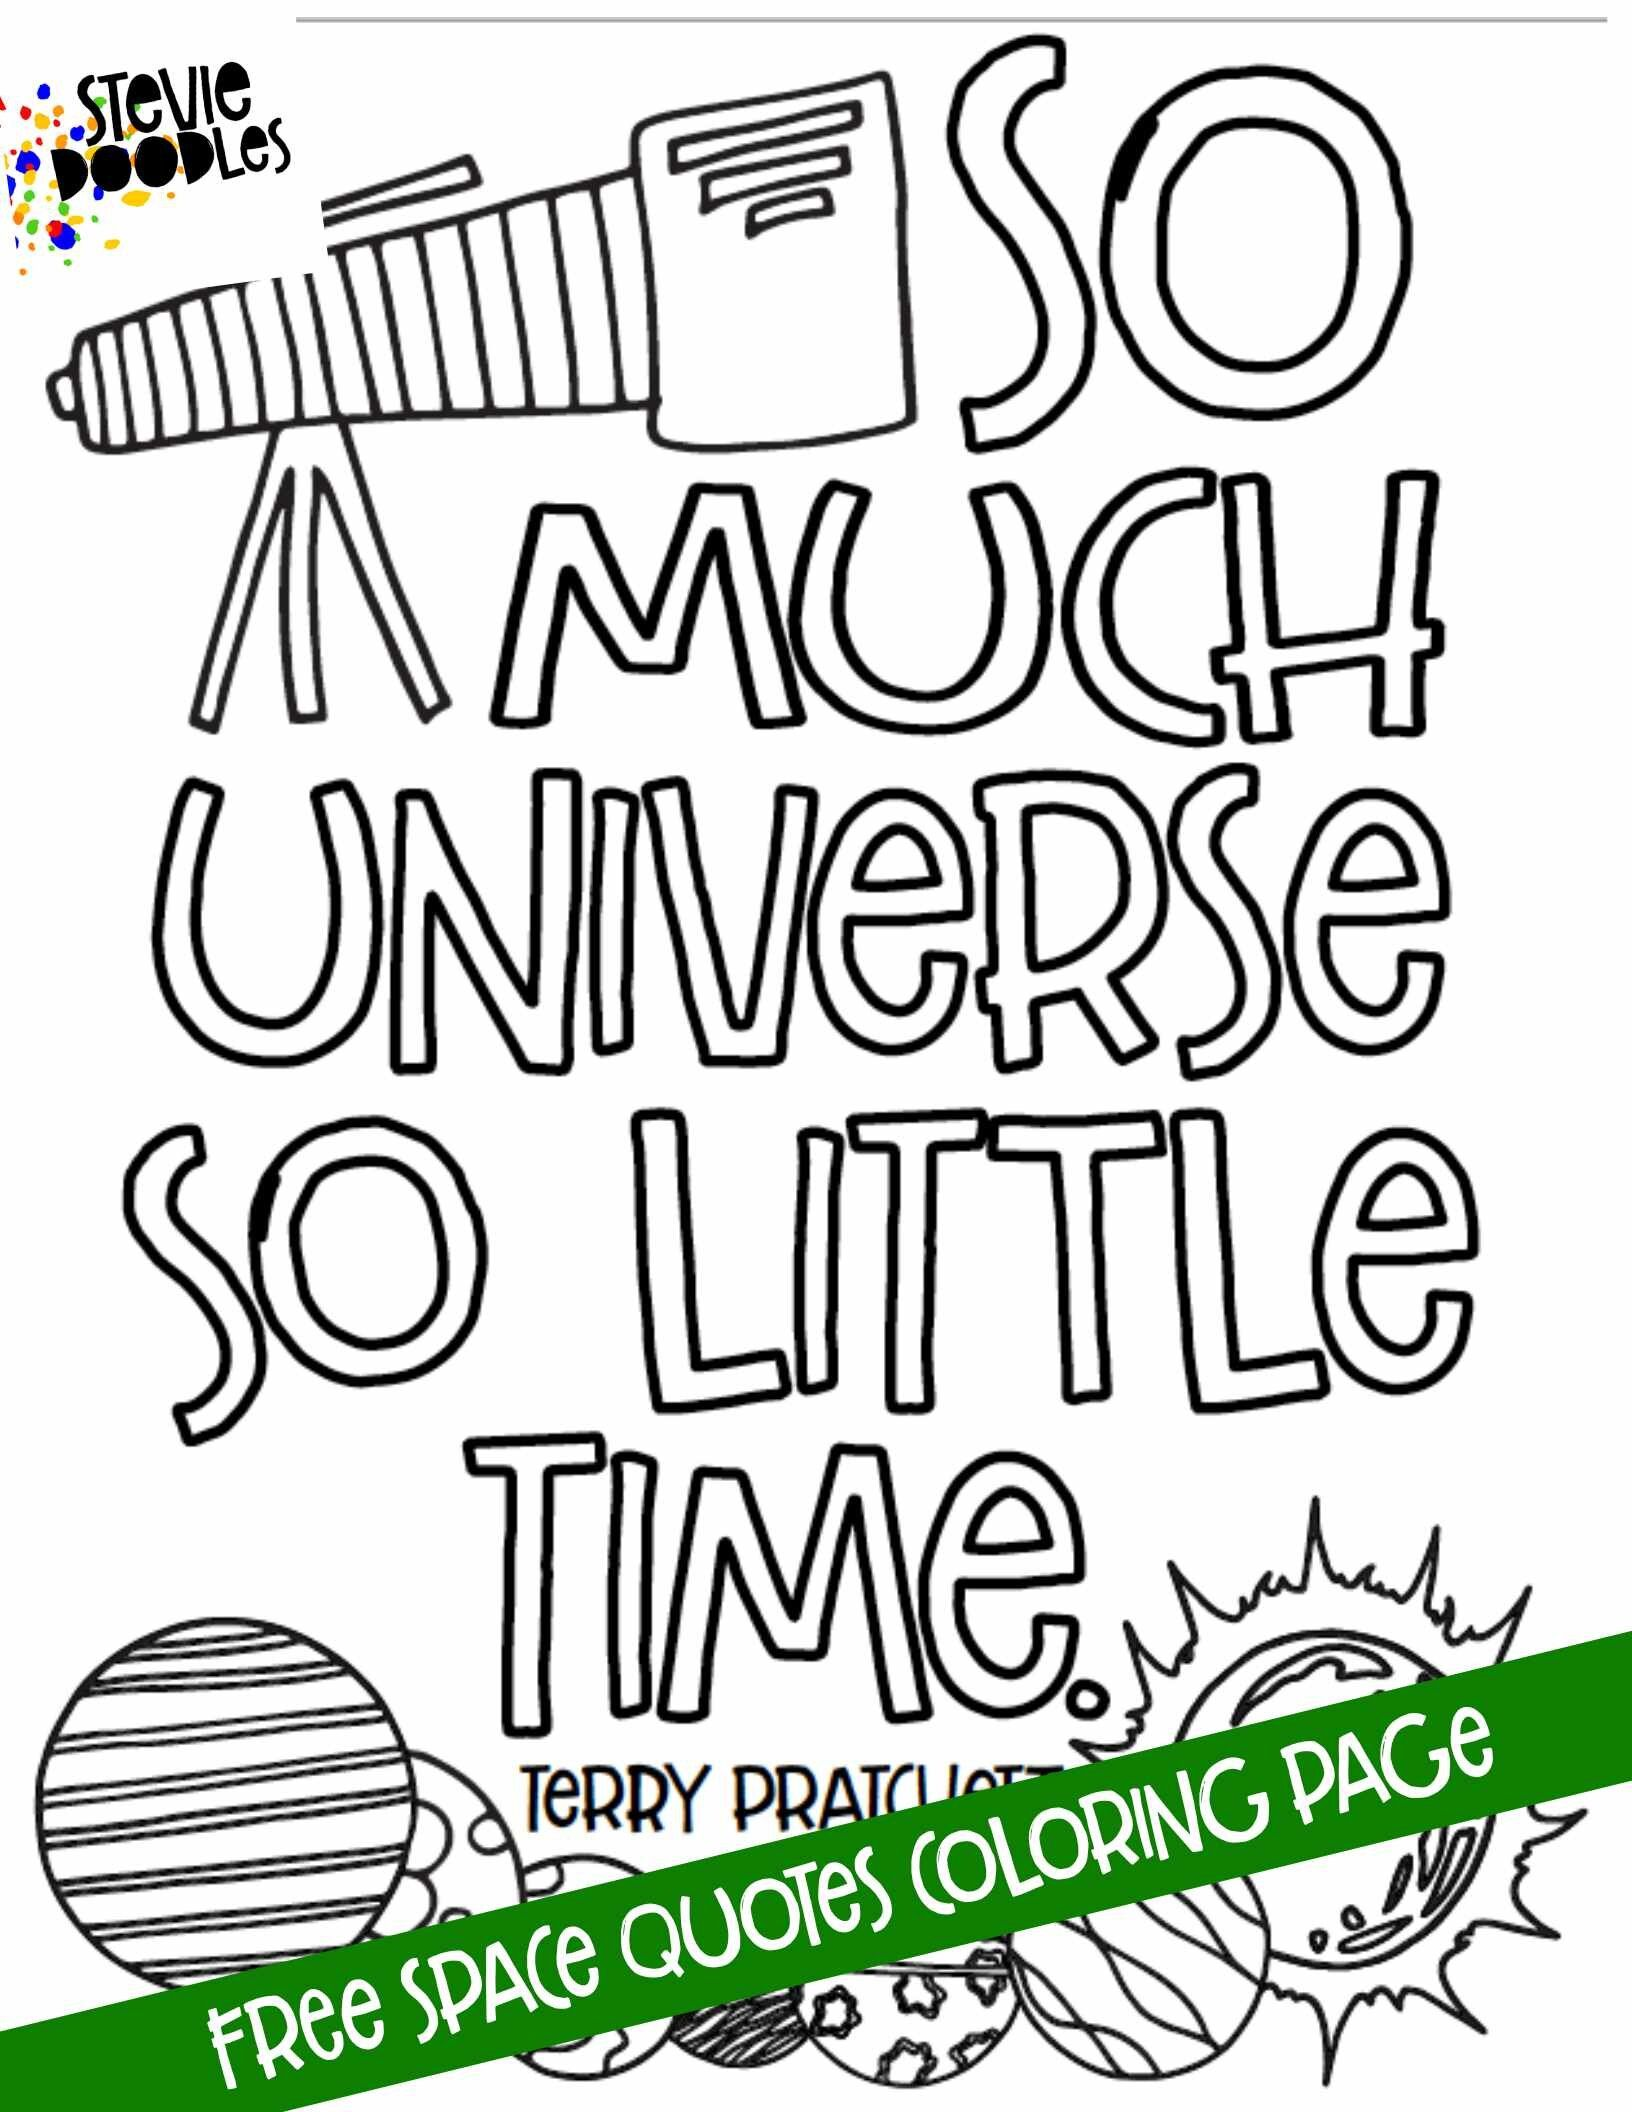 Space Quotes 5 Free Printable Coloring Pages Stevie Doodles Space Quotes Teacher Worksheets Super Teacher Worksheets [ 2112 x 1632 Pixel ]